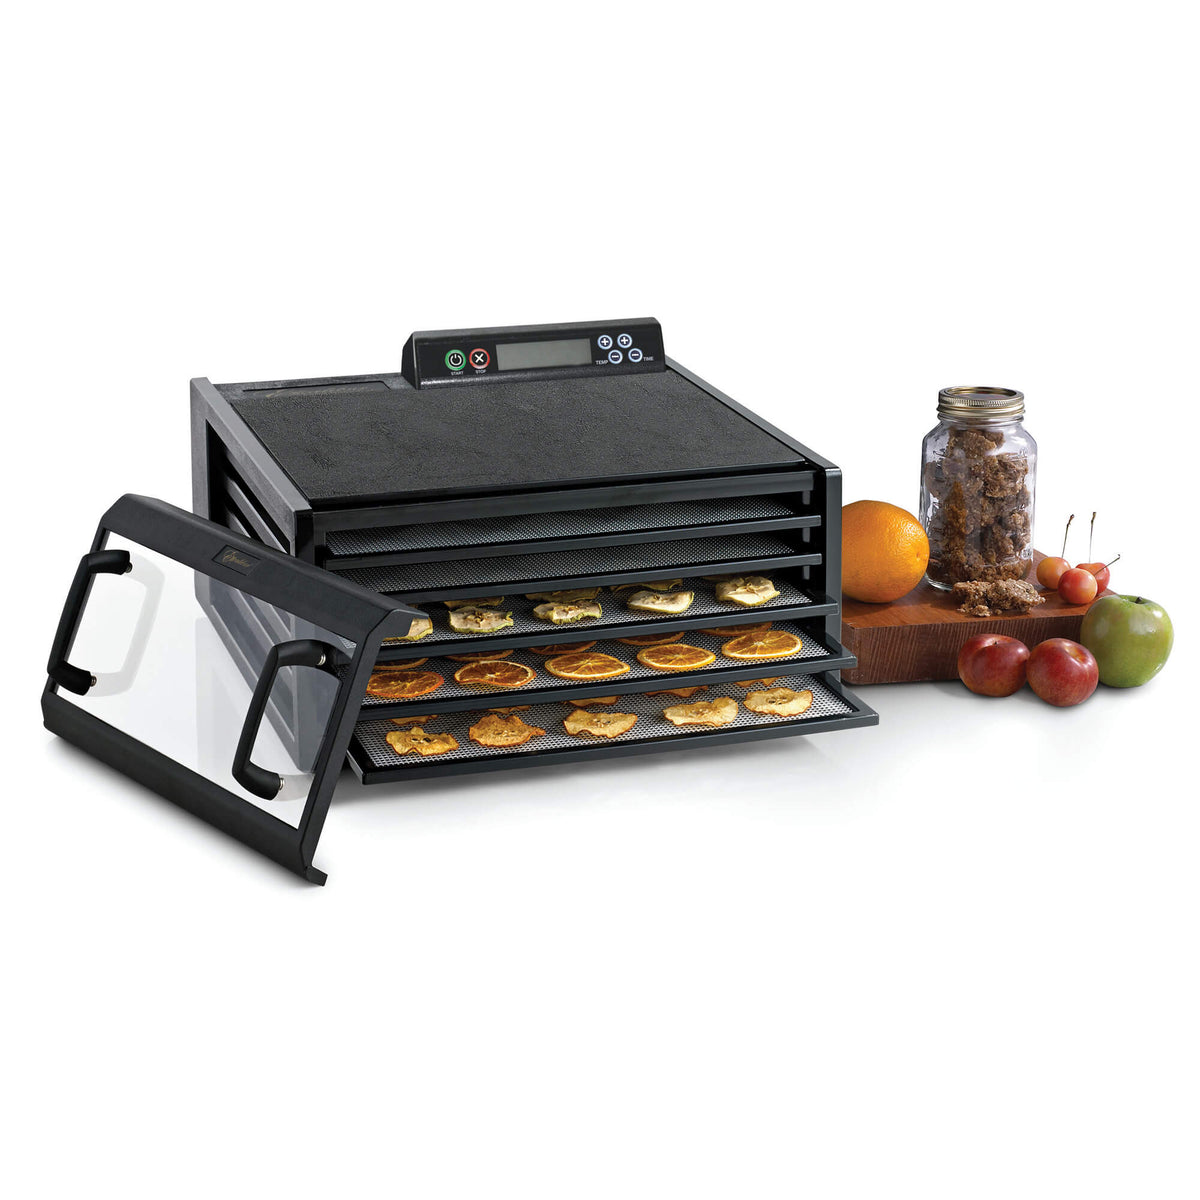 Excalibur 4548CDB 5 tray digital dehydrator with clear door propped to the side and food on the trays.